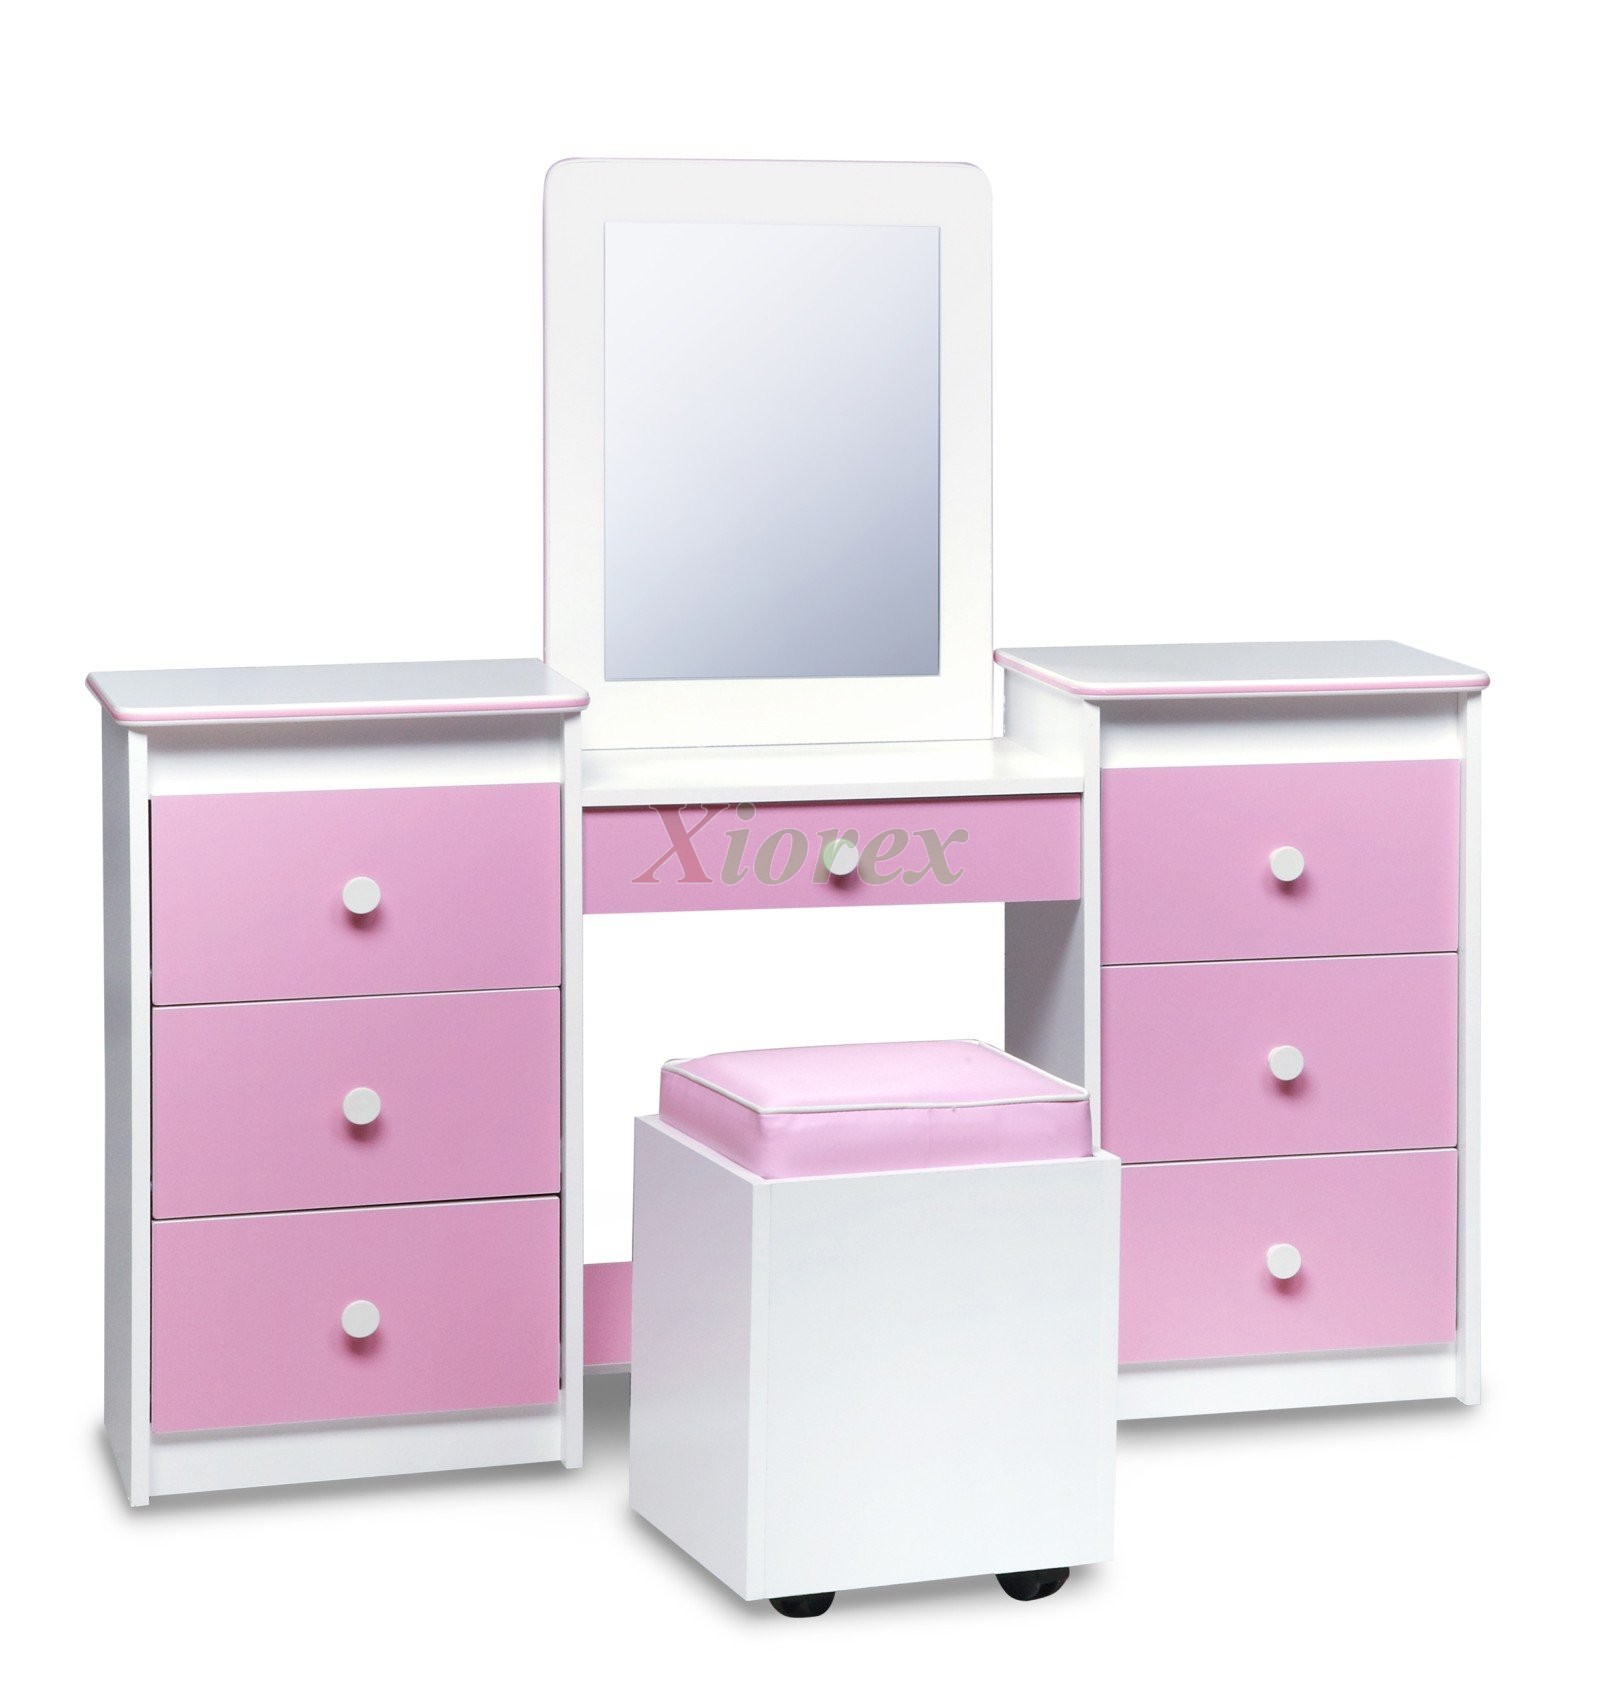 Vanity Sets Life Line Tango Bedroom Vanity Table Mirror Seat | Xiorex